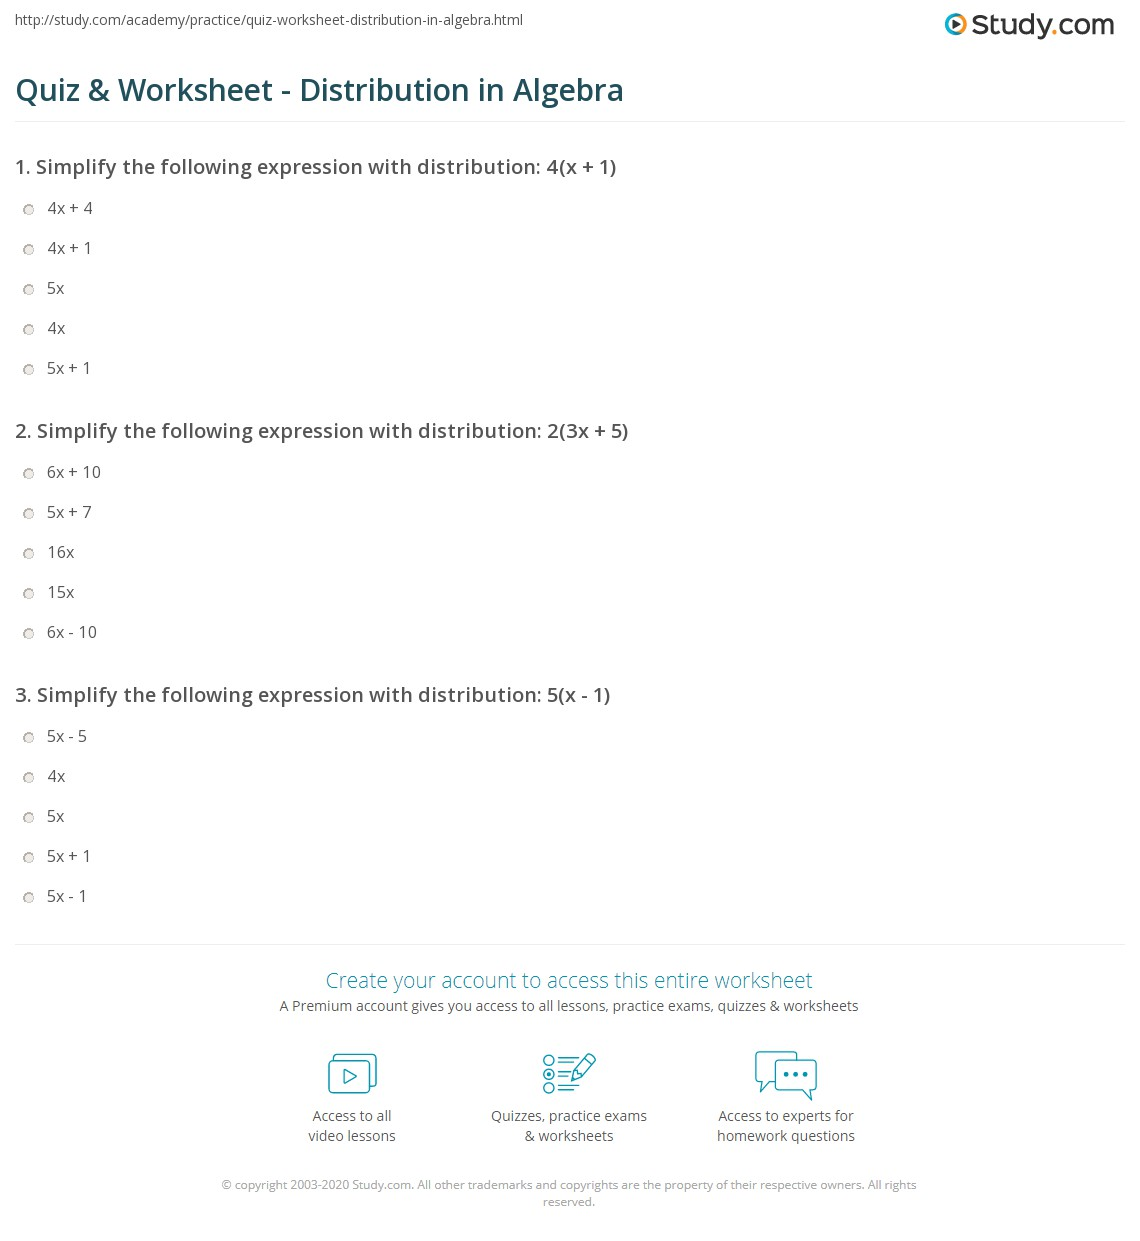 Quiz & Worksheet - Distribution in Algebra | Study.com